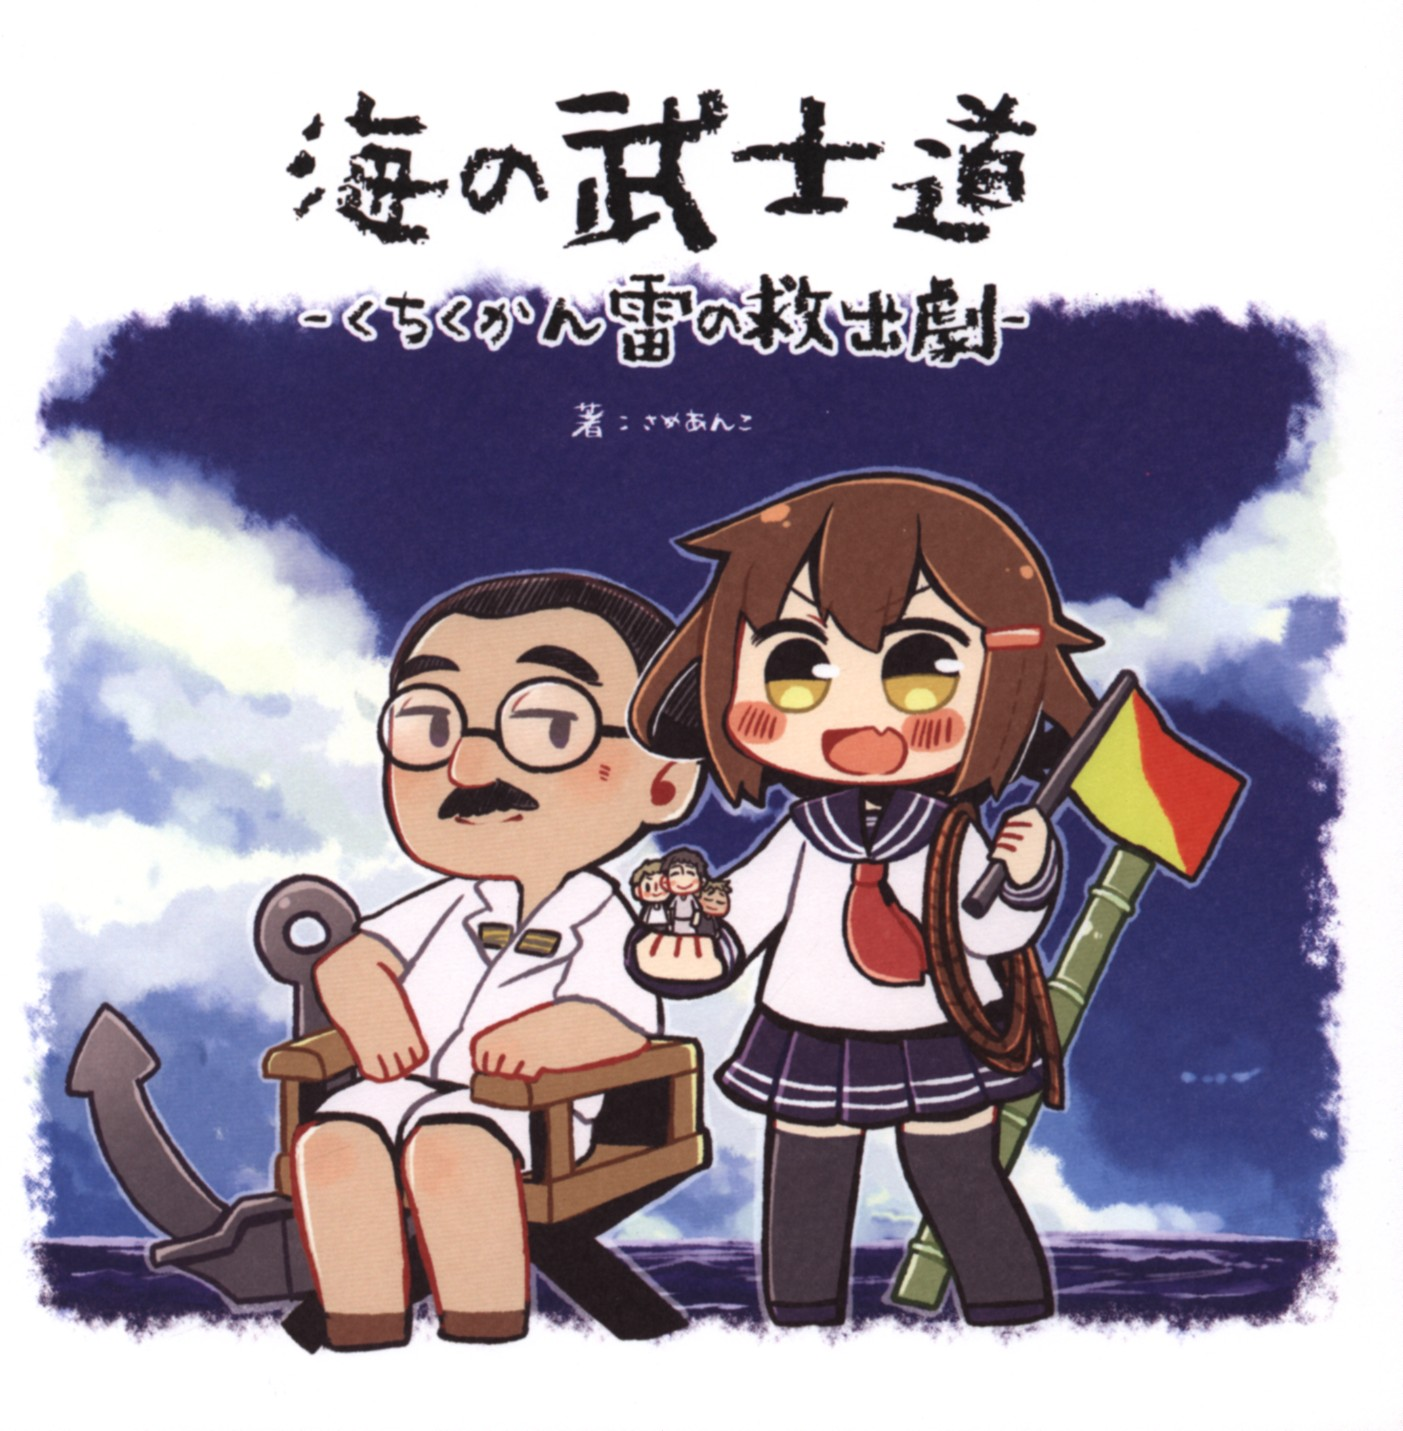 Doujinshi - Kantai Collection / Ikazuchi (Kan Colle) (海の武士道ーくちくかん雷の救出劇ー) / そこそこ幸せな生活